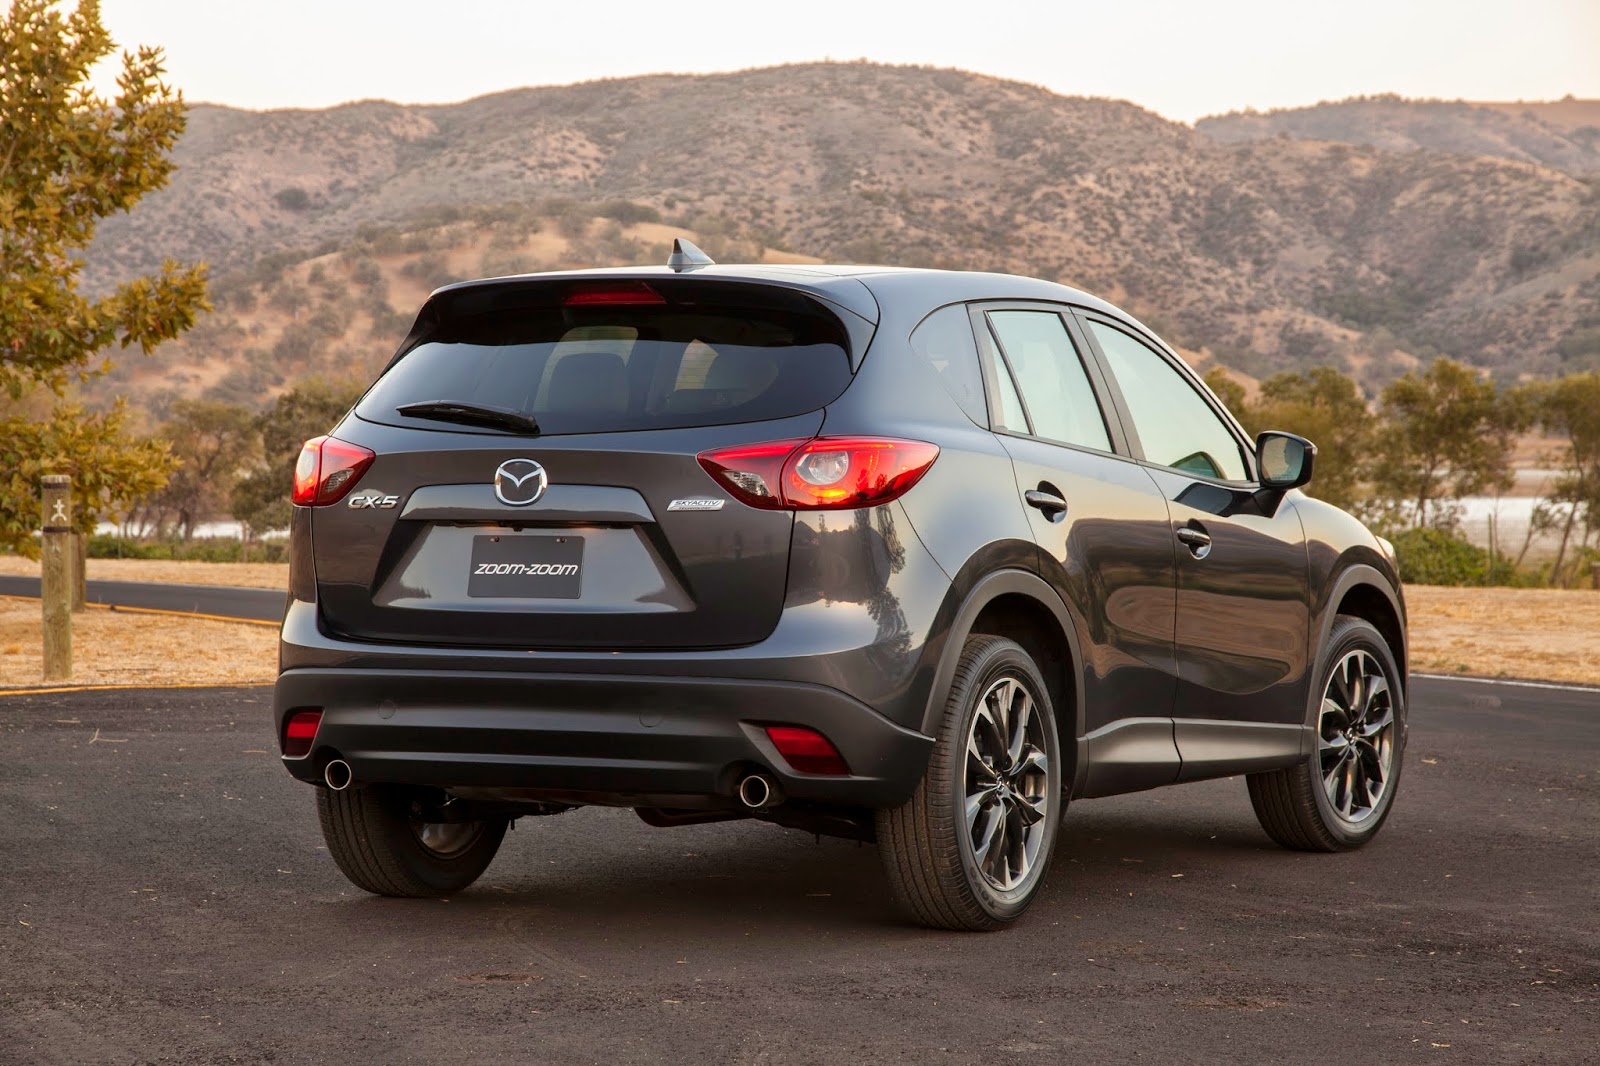 Rear 3/4 view of 2016 Mazda CX-5